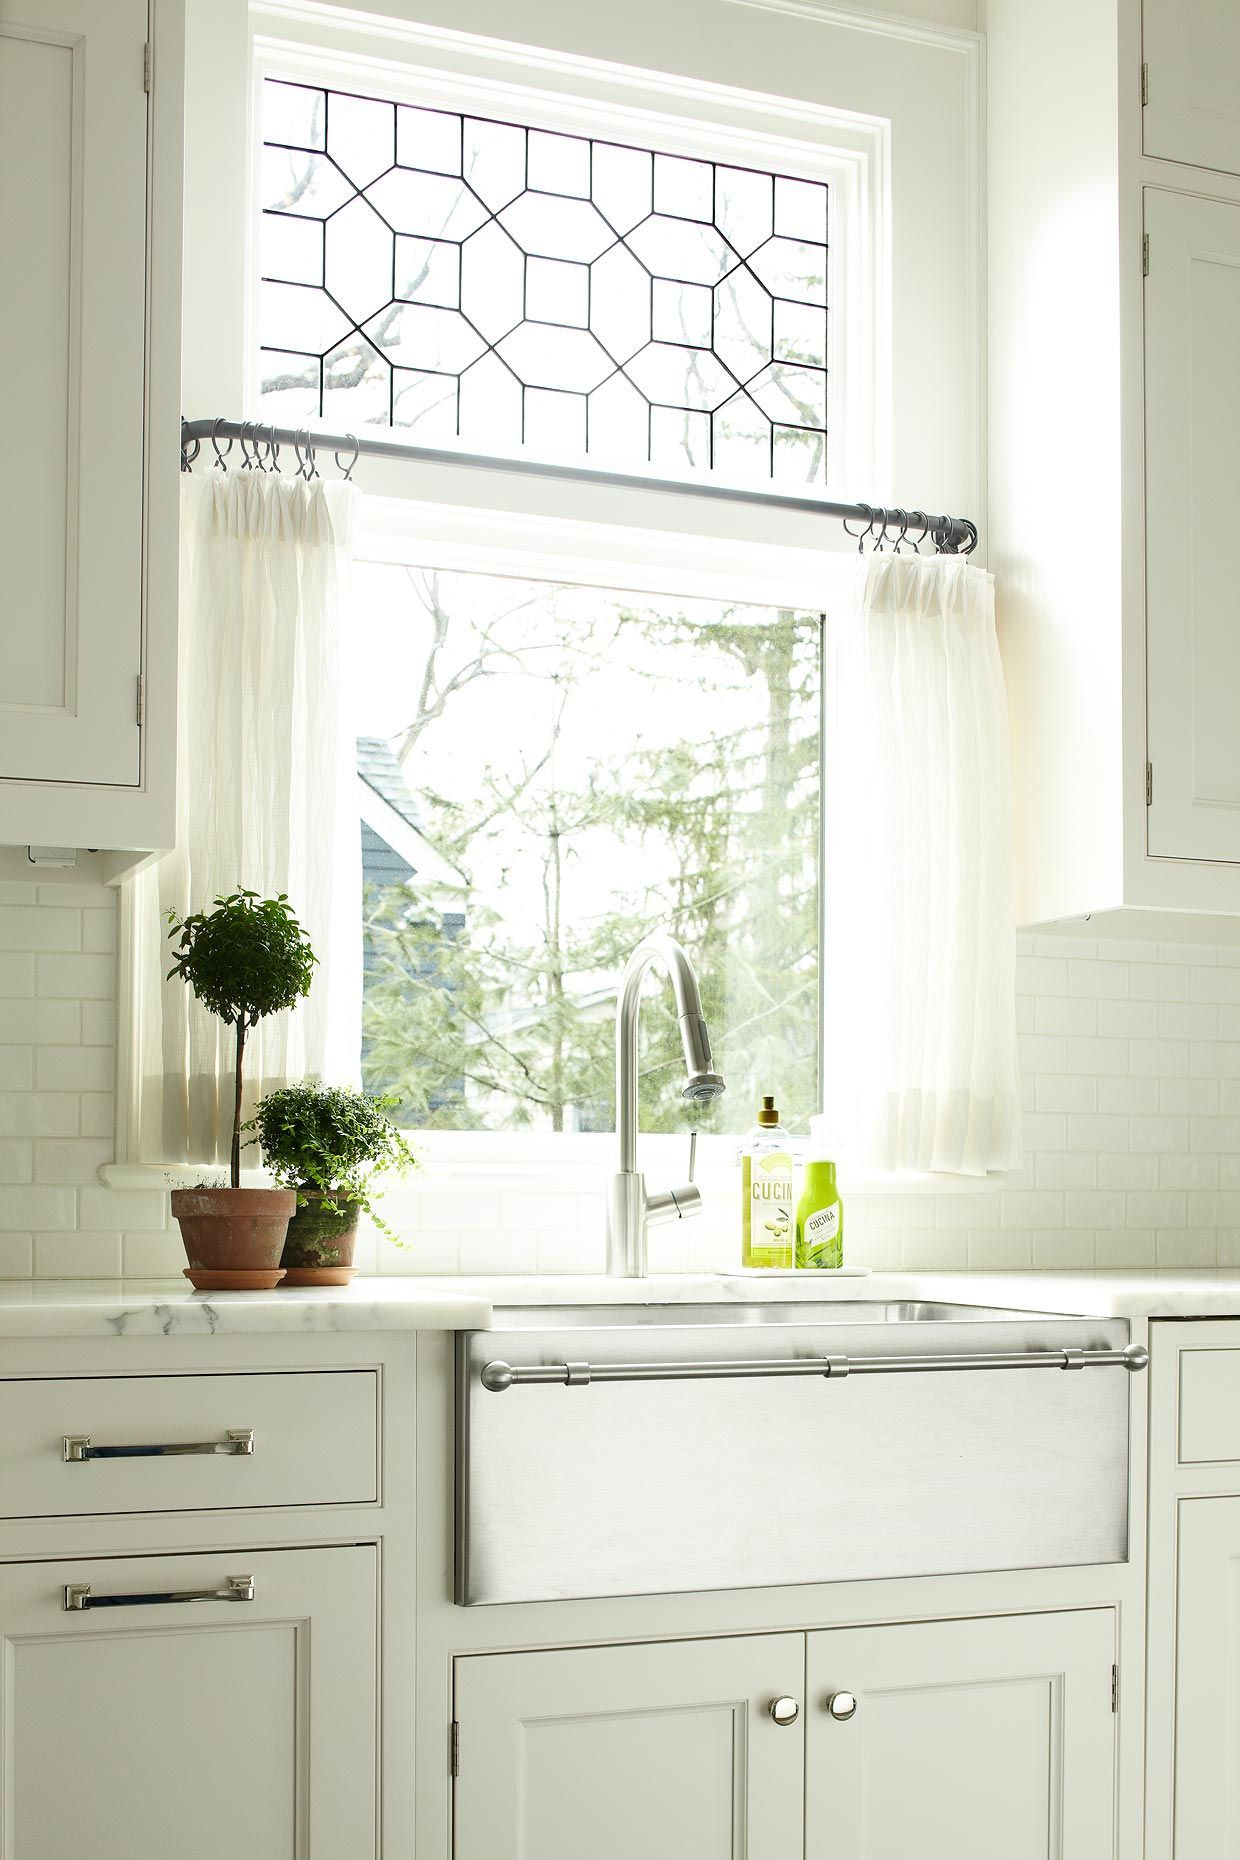 Kitchen window treatments  heidi piron design and cabinetry  transitional    window